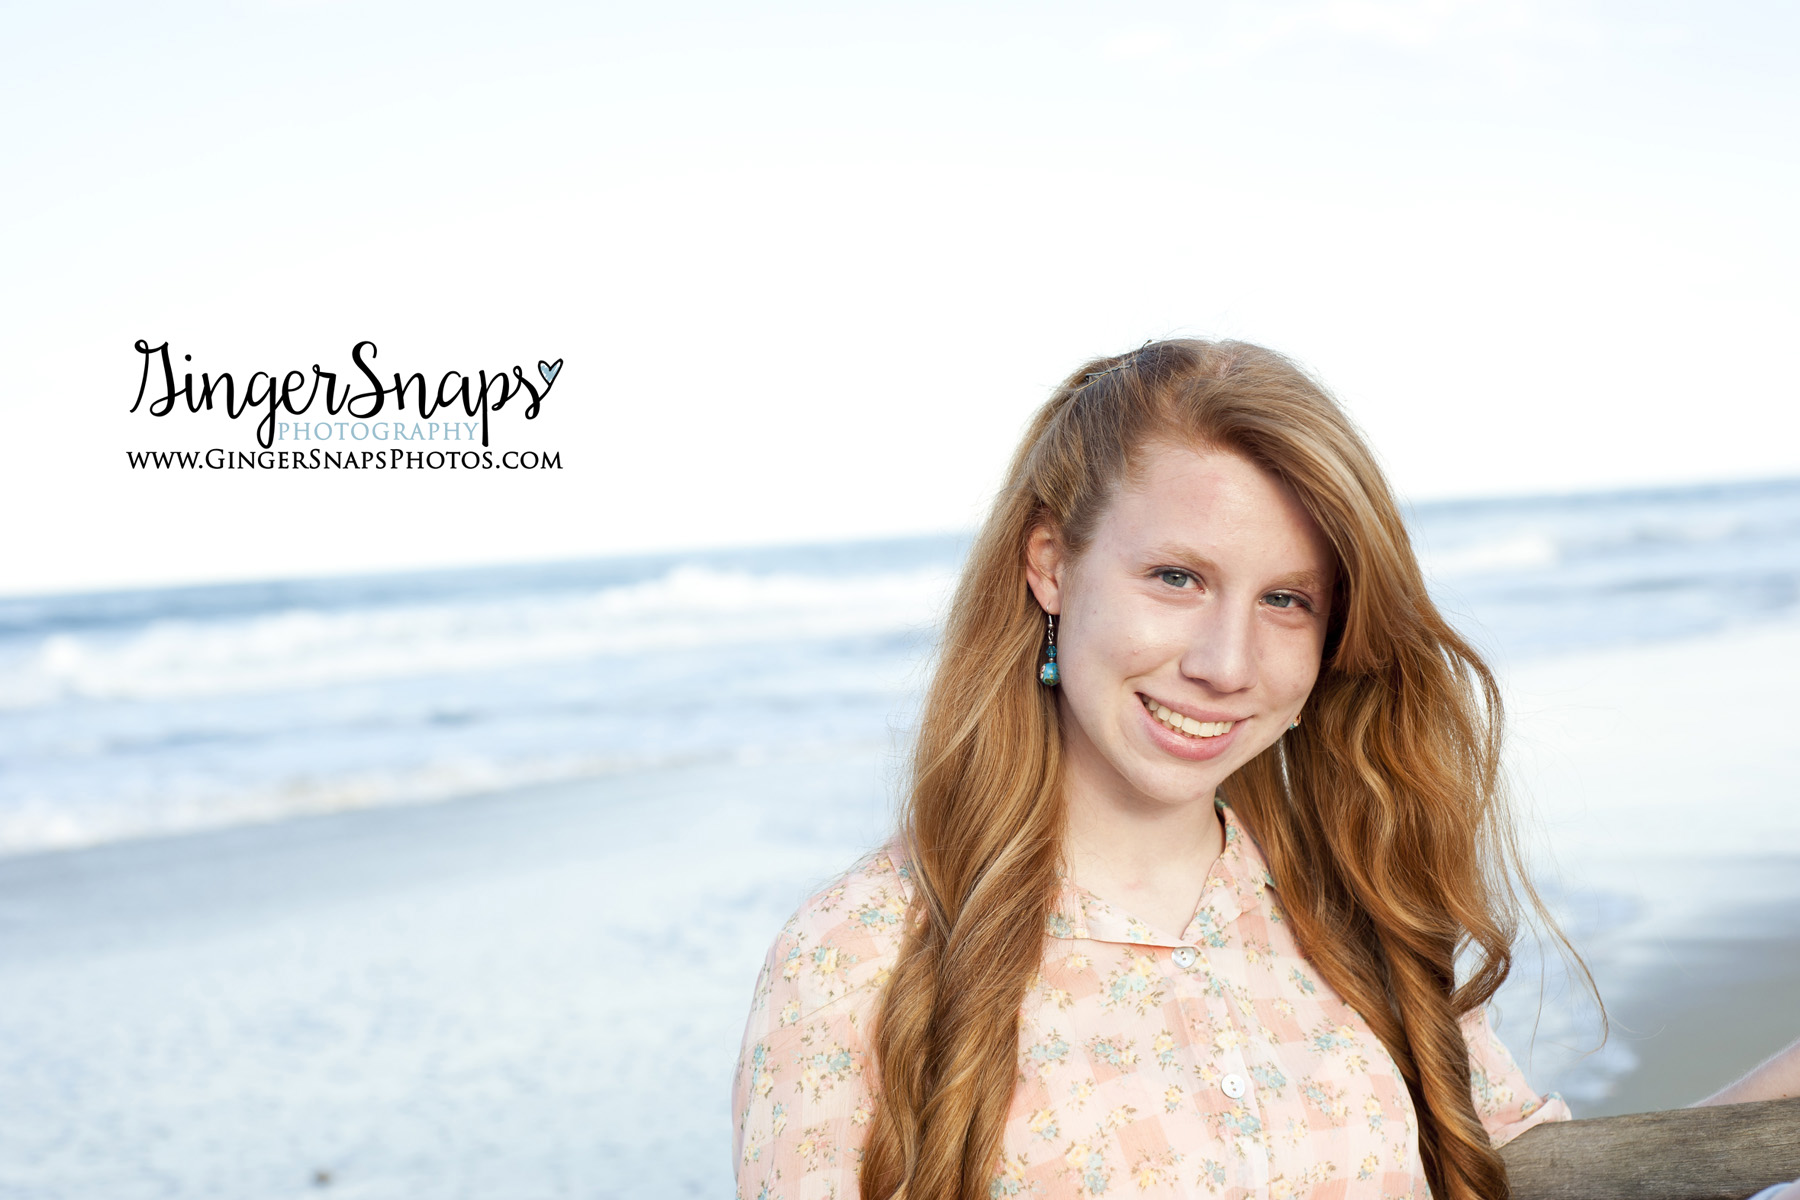 GingerSnaps Photography - 01.jpg